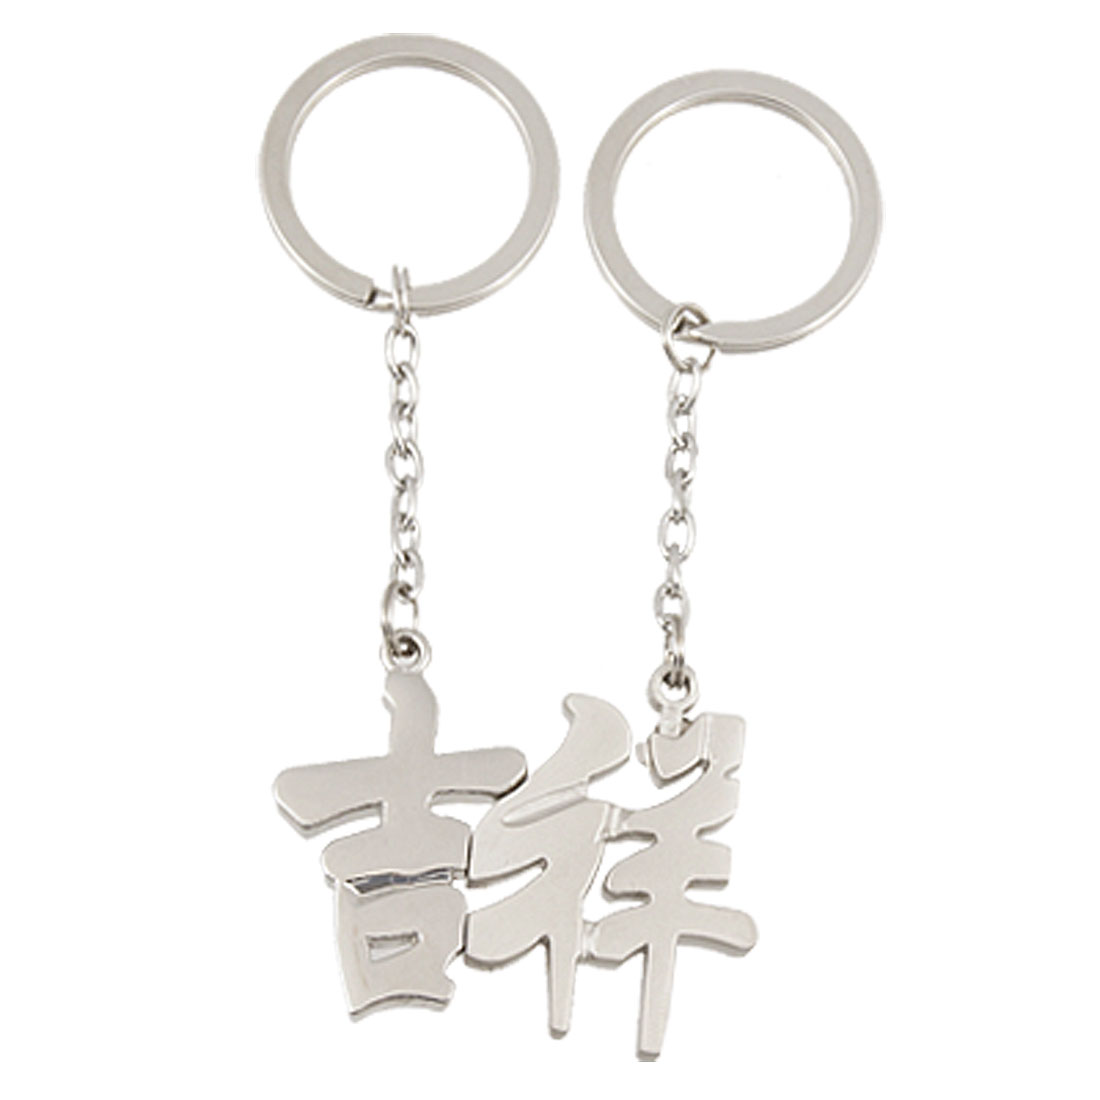 2 Pcs Auspicious Chinese Characters Pendant Silver Tone Magnetic Keychains